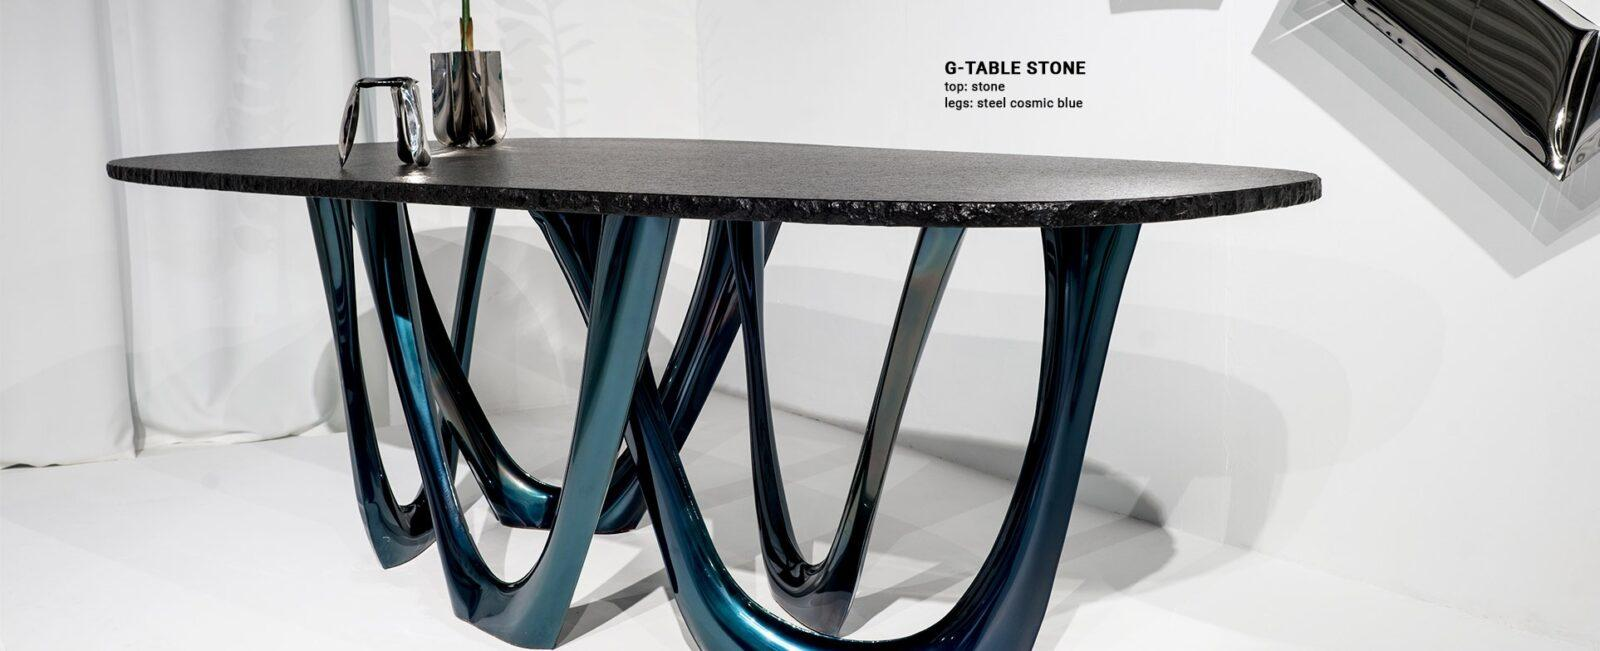 g-table stone